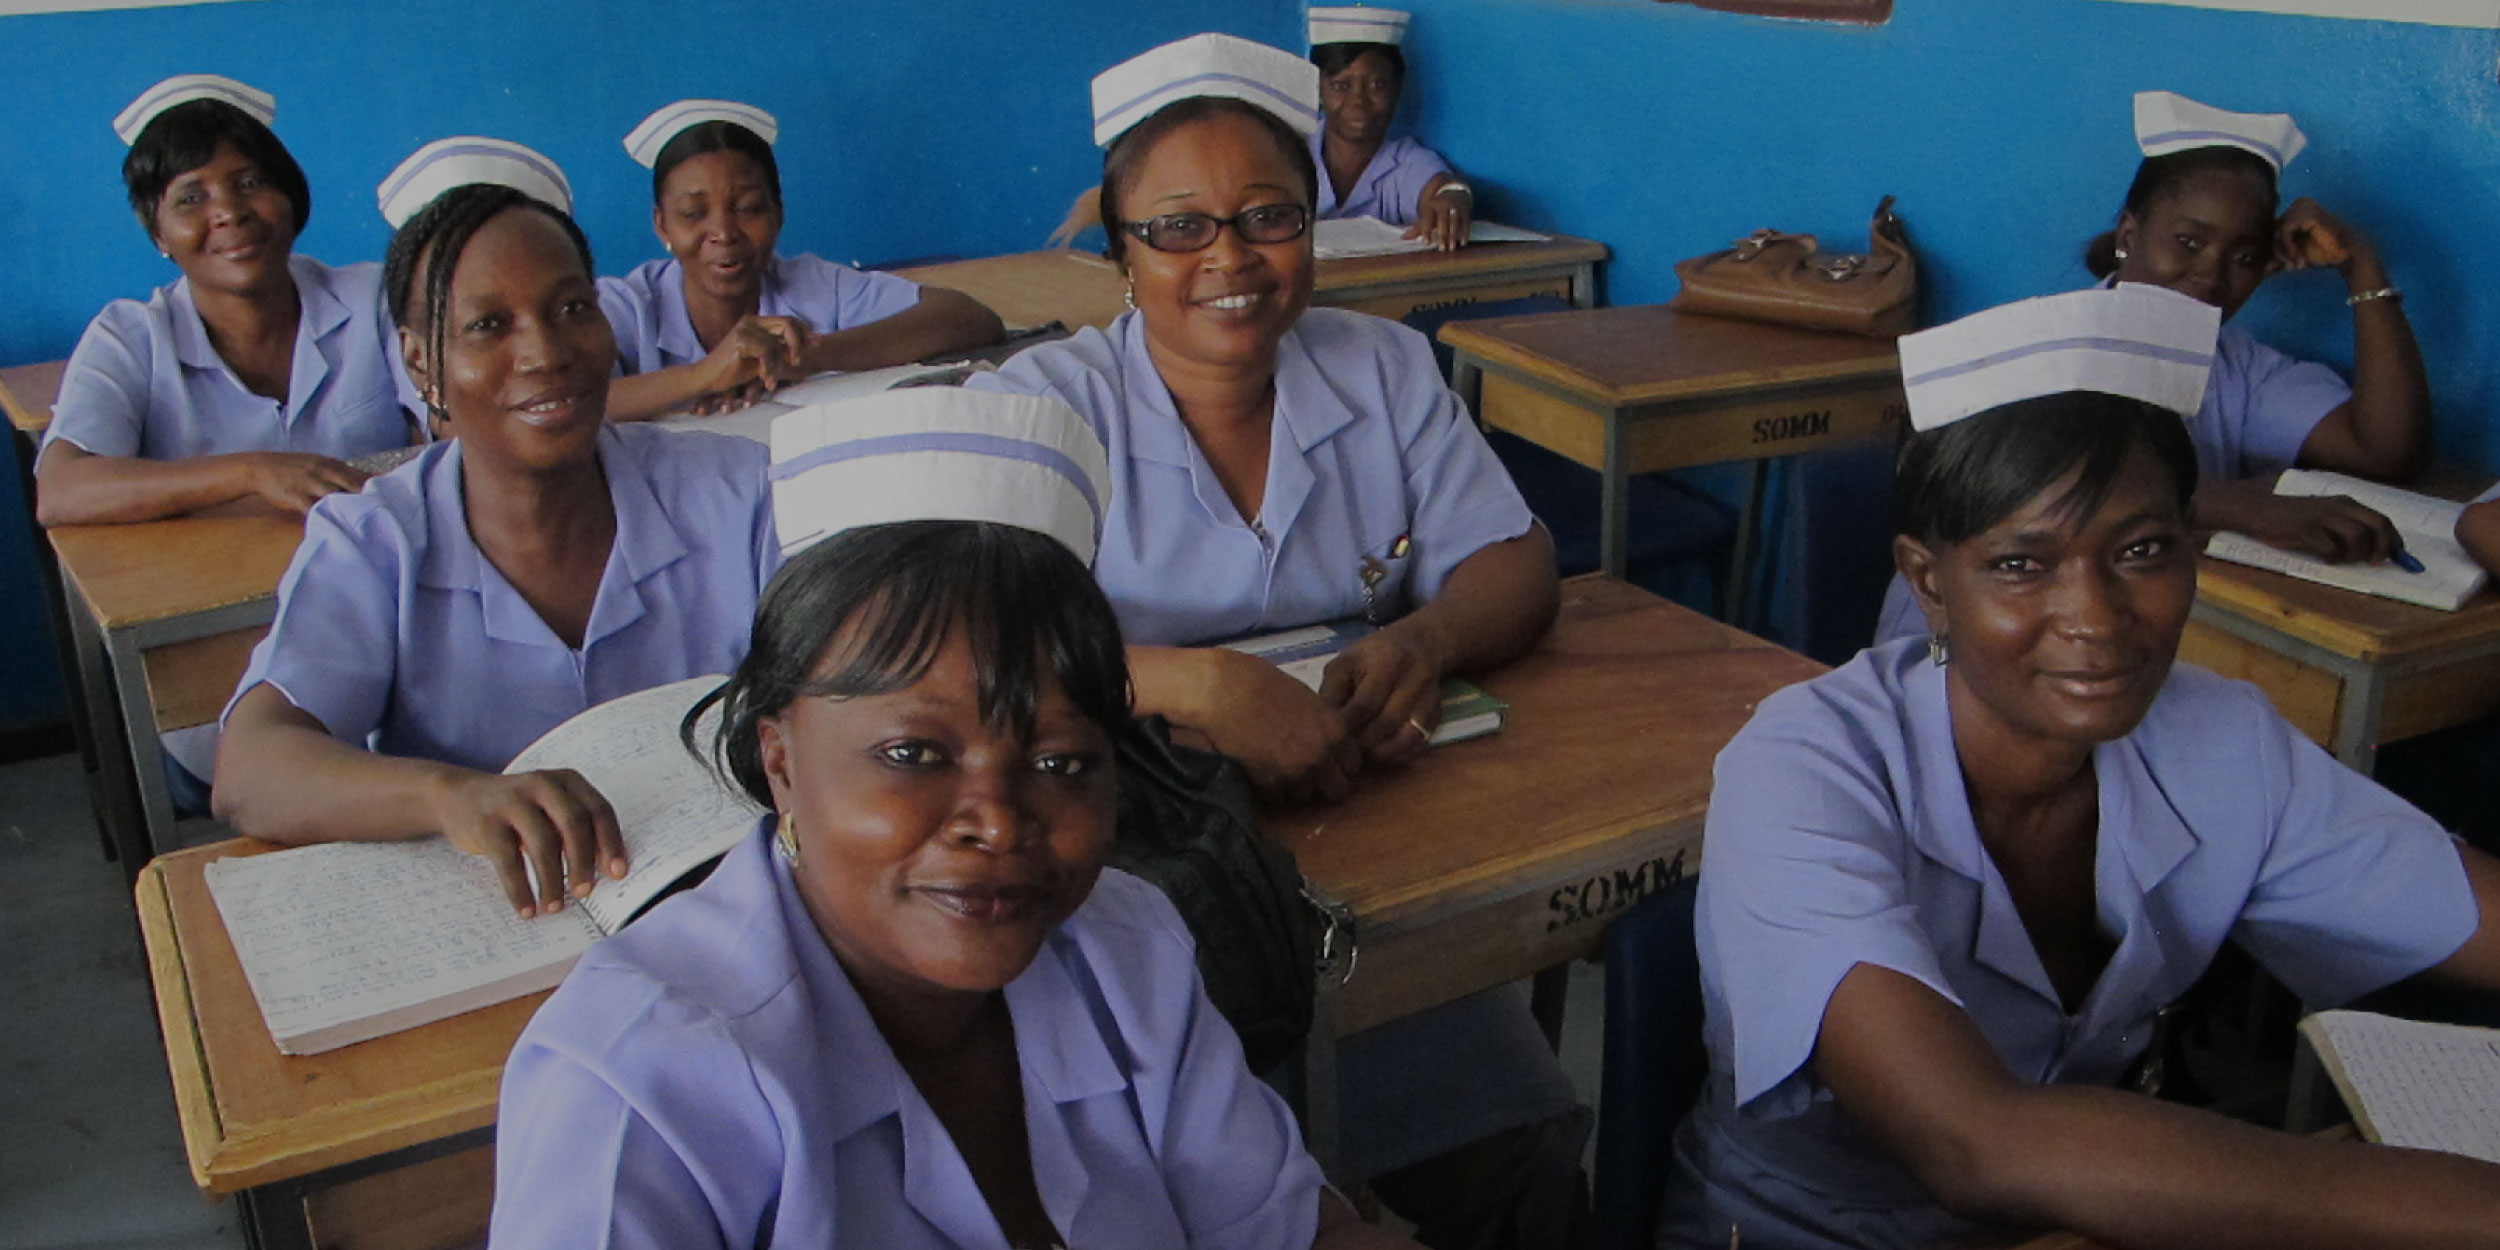 A group of seated African female nurses in uniform, smiling at the camera